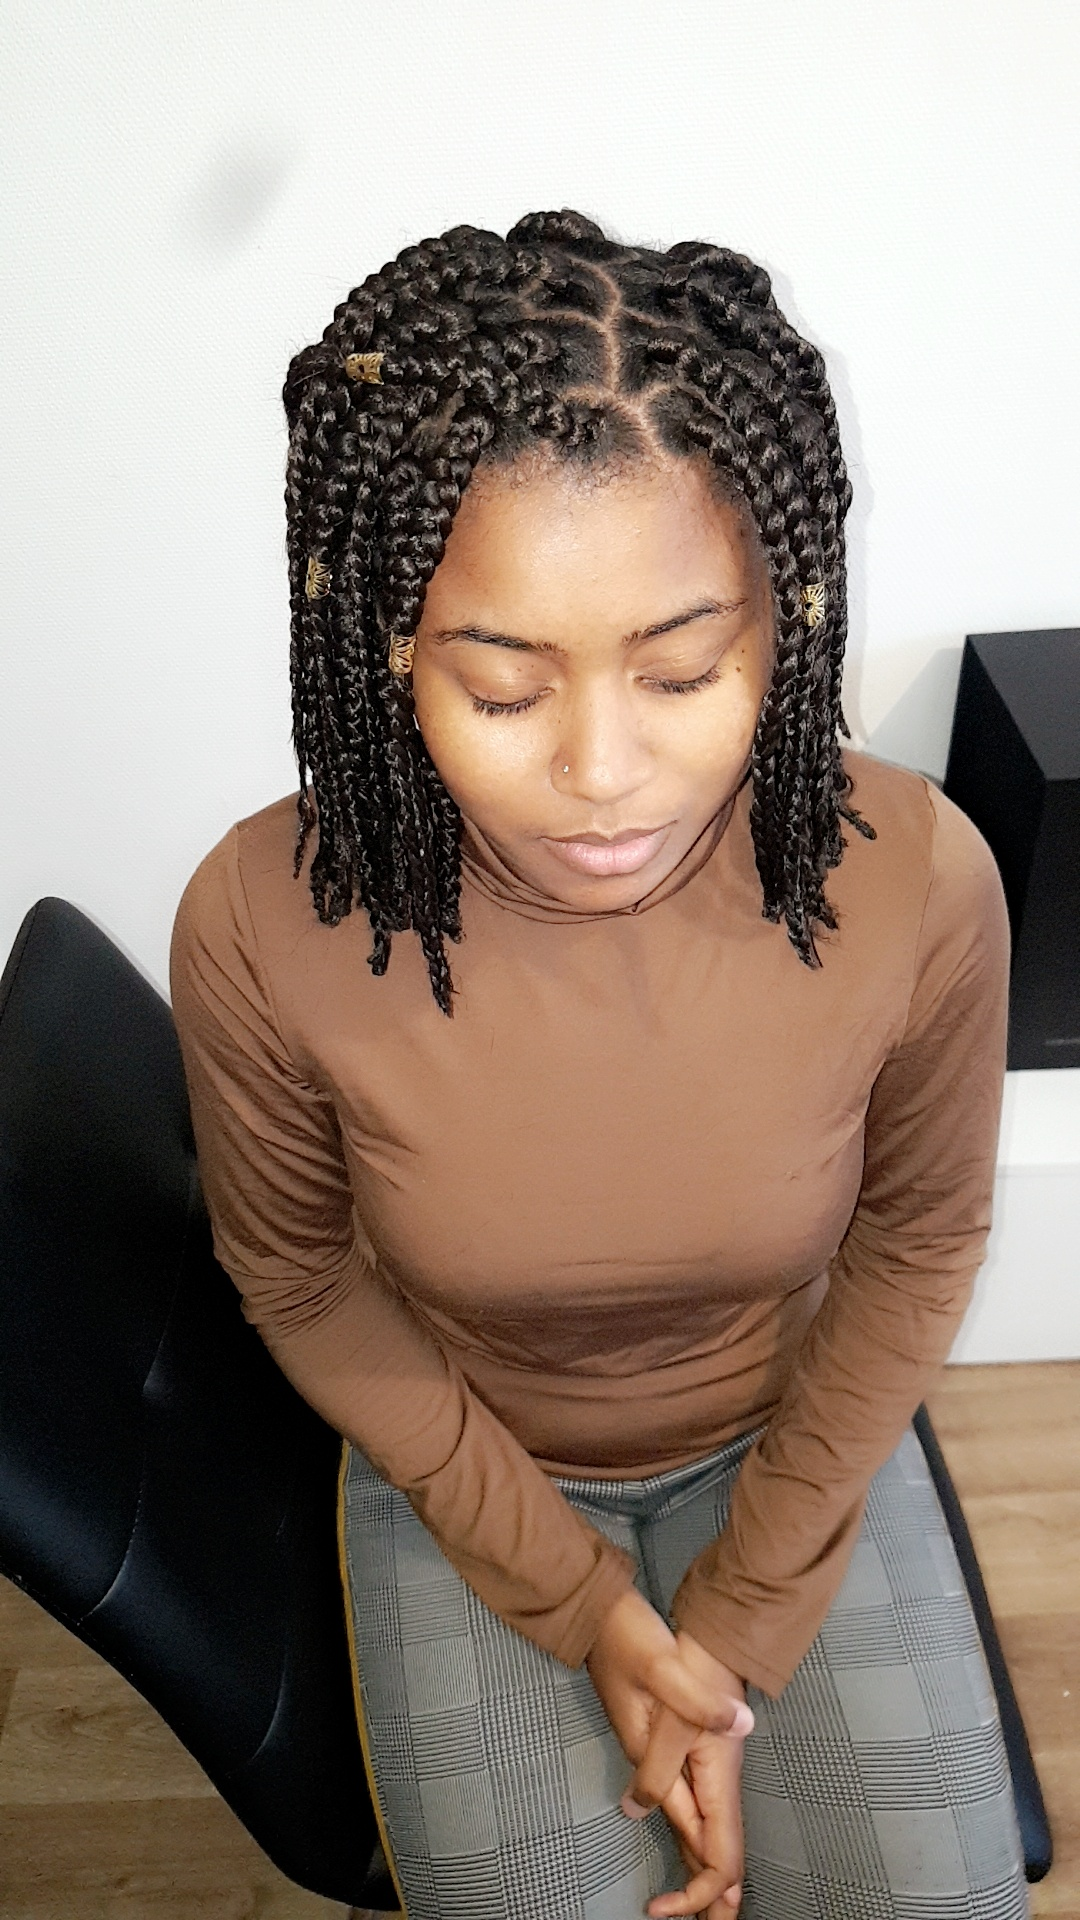 salon de coiffure afro tresse tresses box braids crochet braids vanilles tissages paris 75 77 78 91 92 93 94 95 ZWRNZSKL